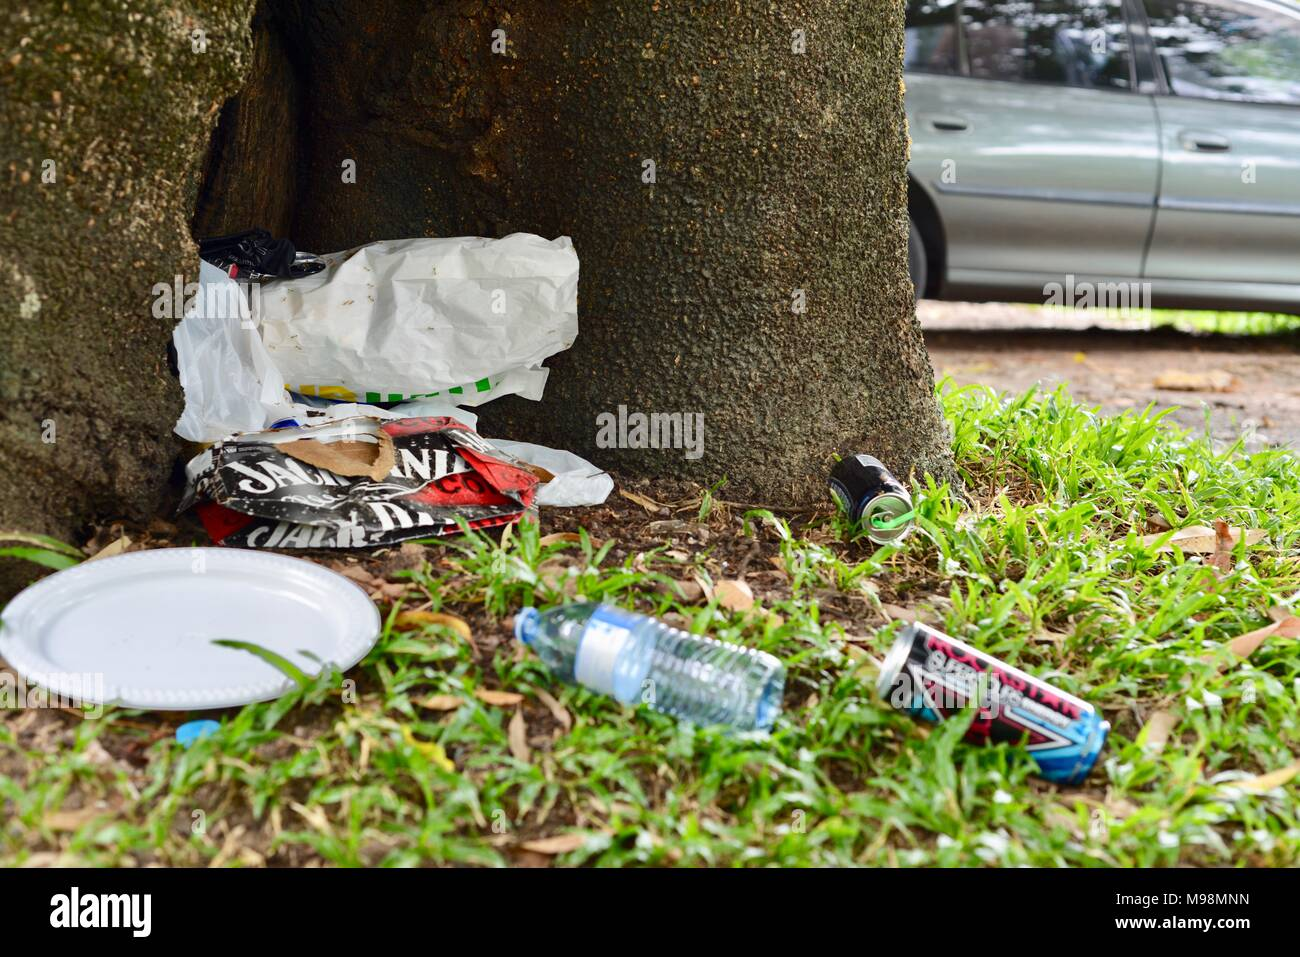 Rubbish left by a bunch of losers near a tree, big Crystal Creek QLD 4816, Paluma range national park, Australia - Stock Image